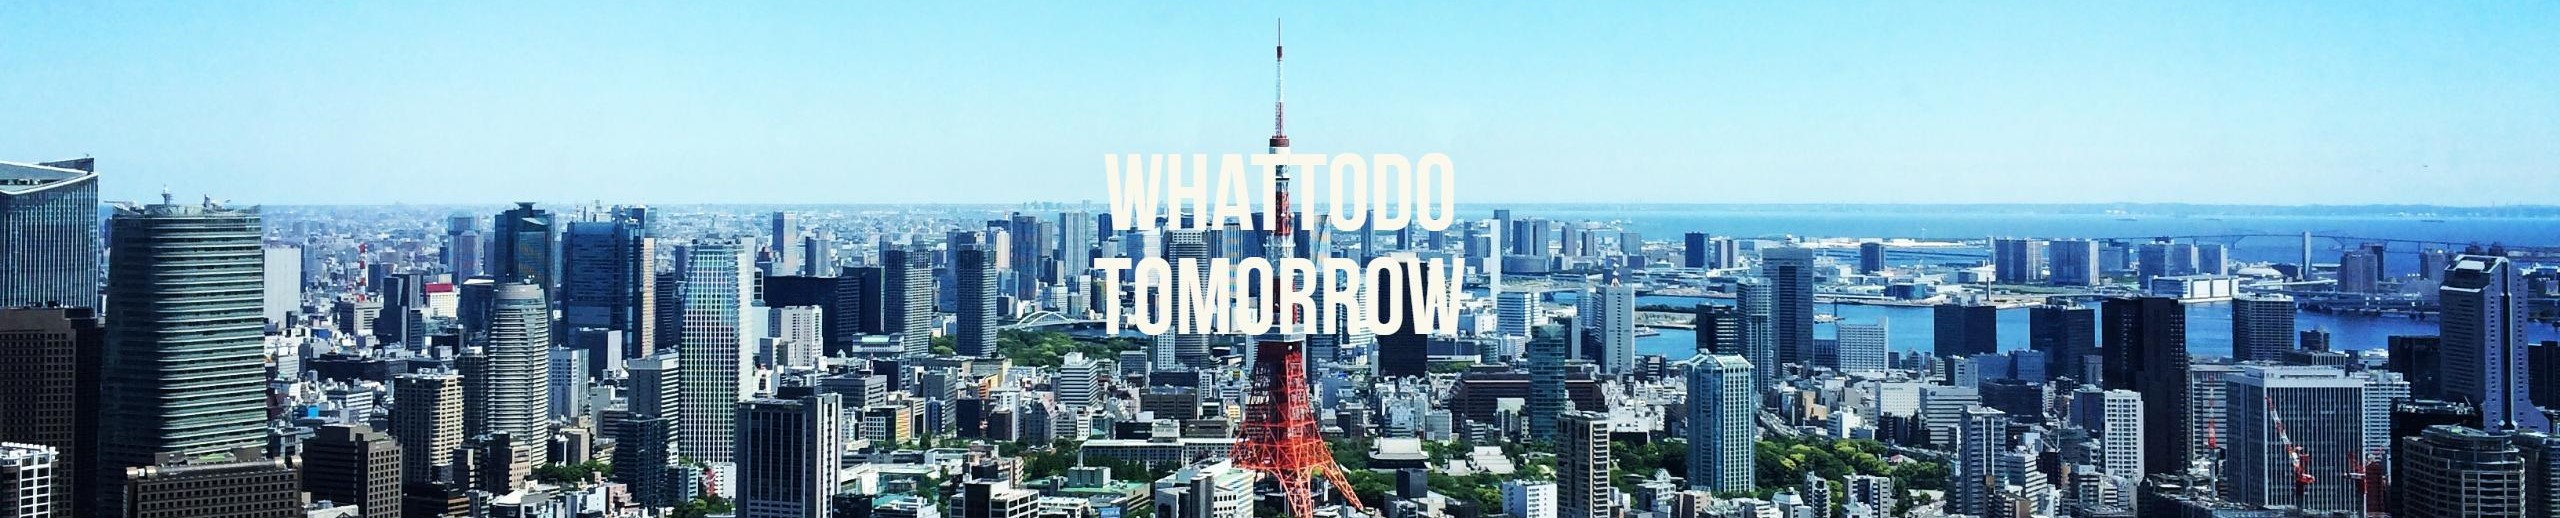 whattodotomorrow